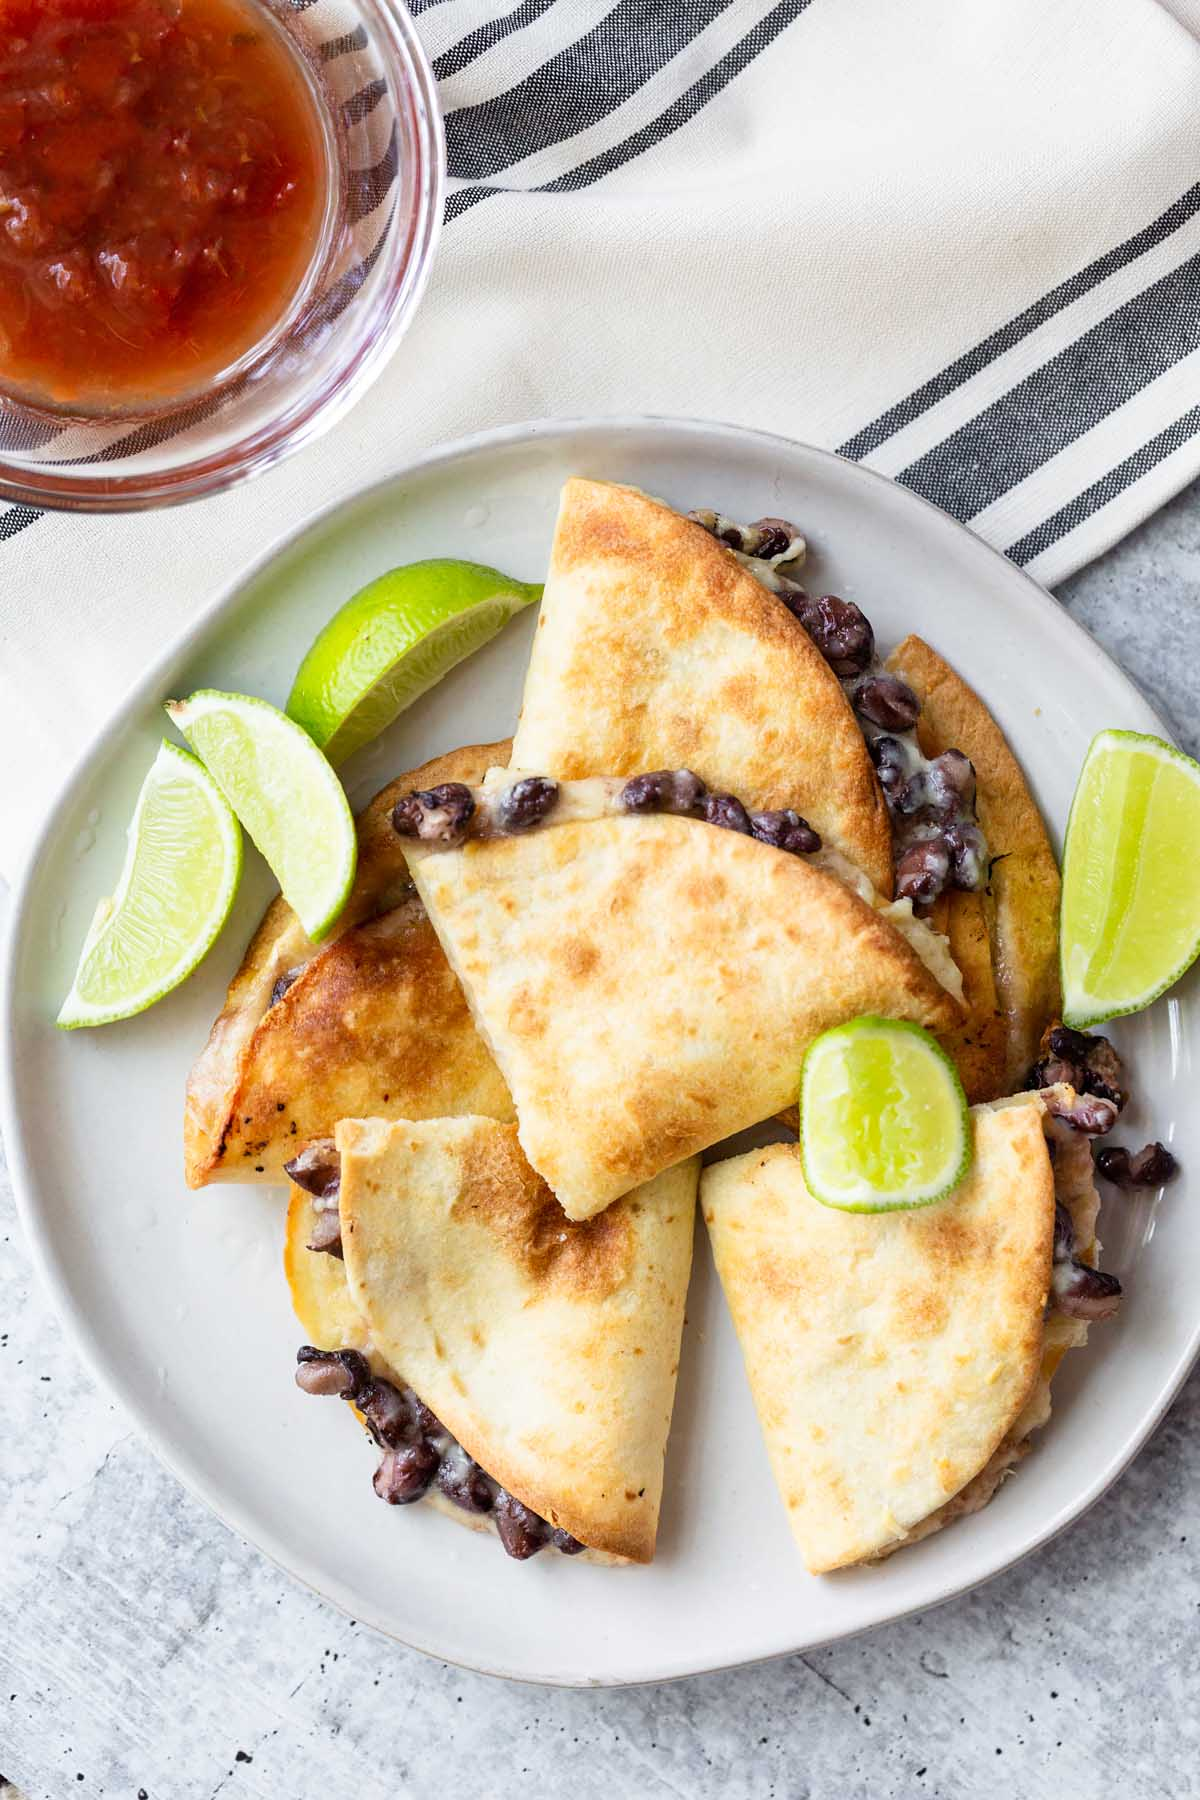 quesadillas on a plate with lime wedges